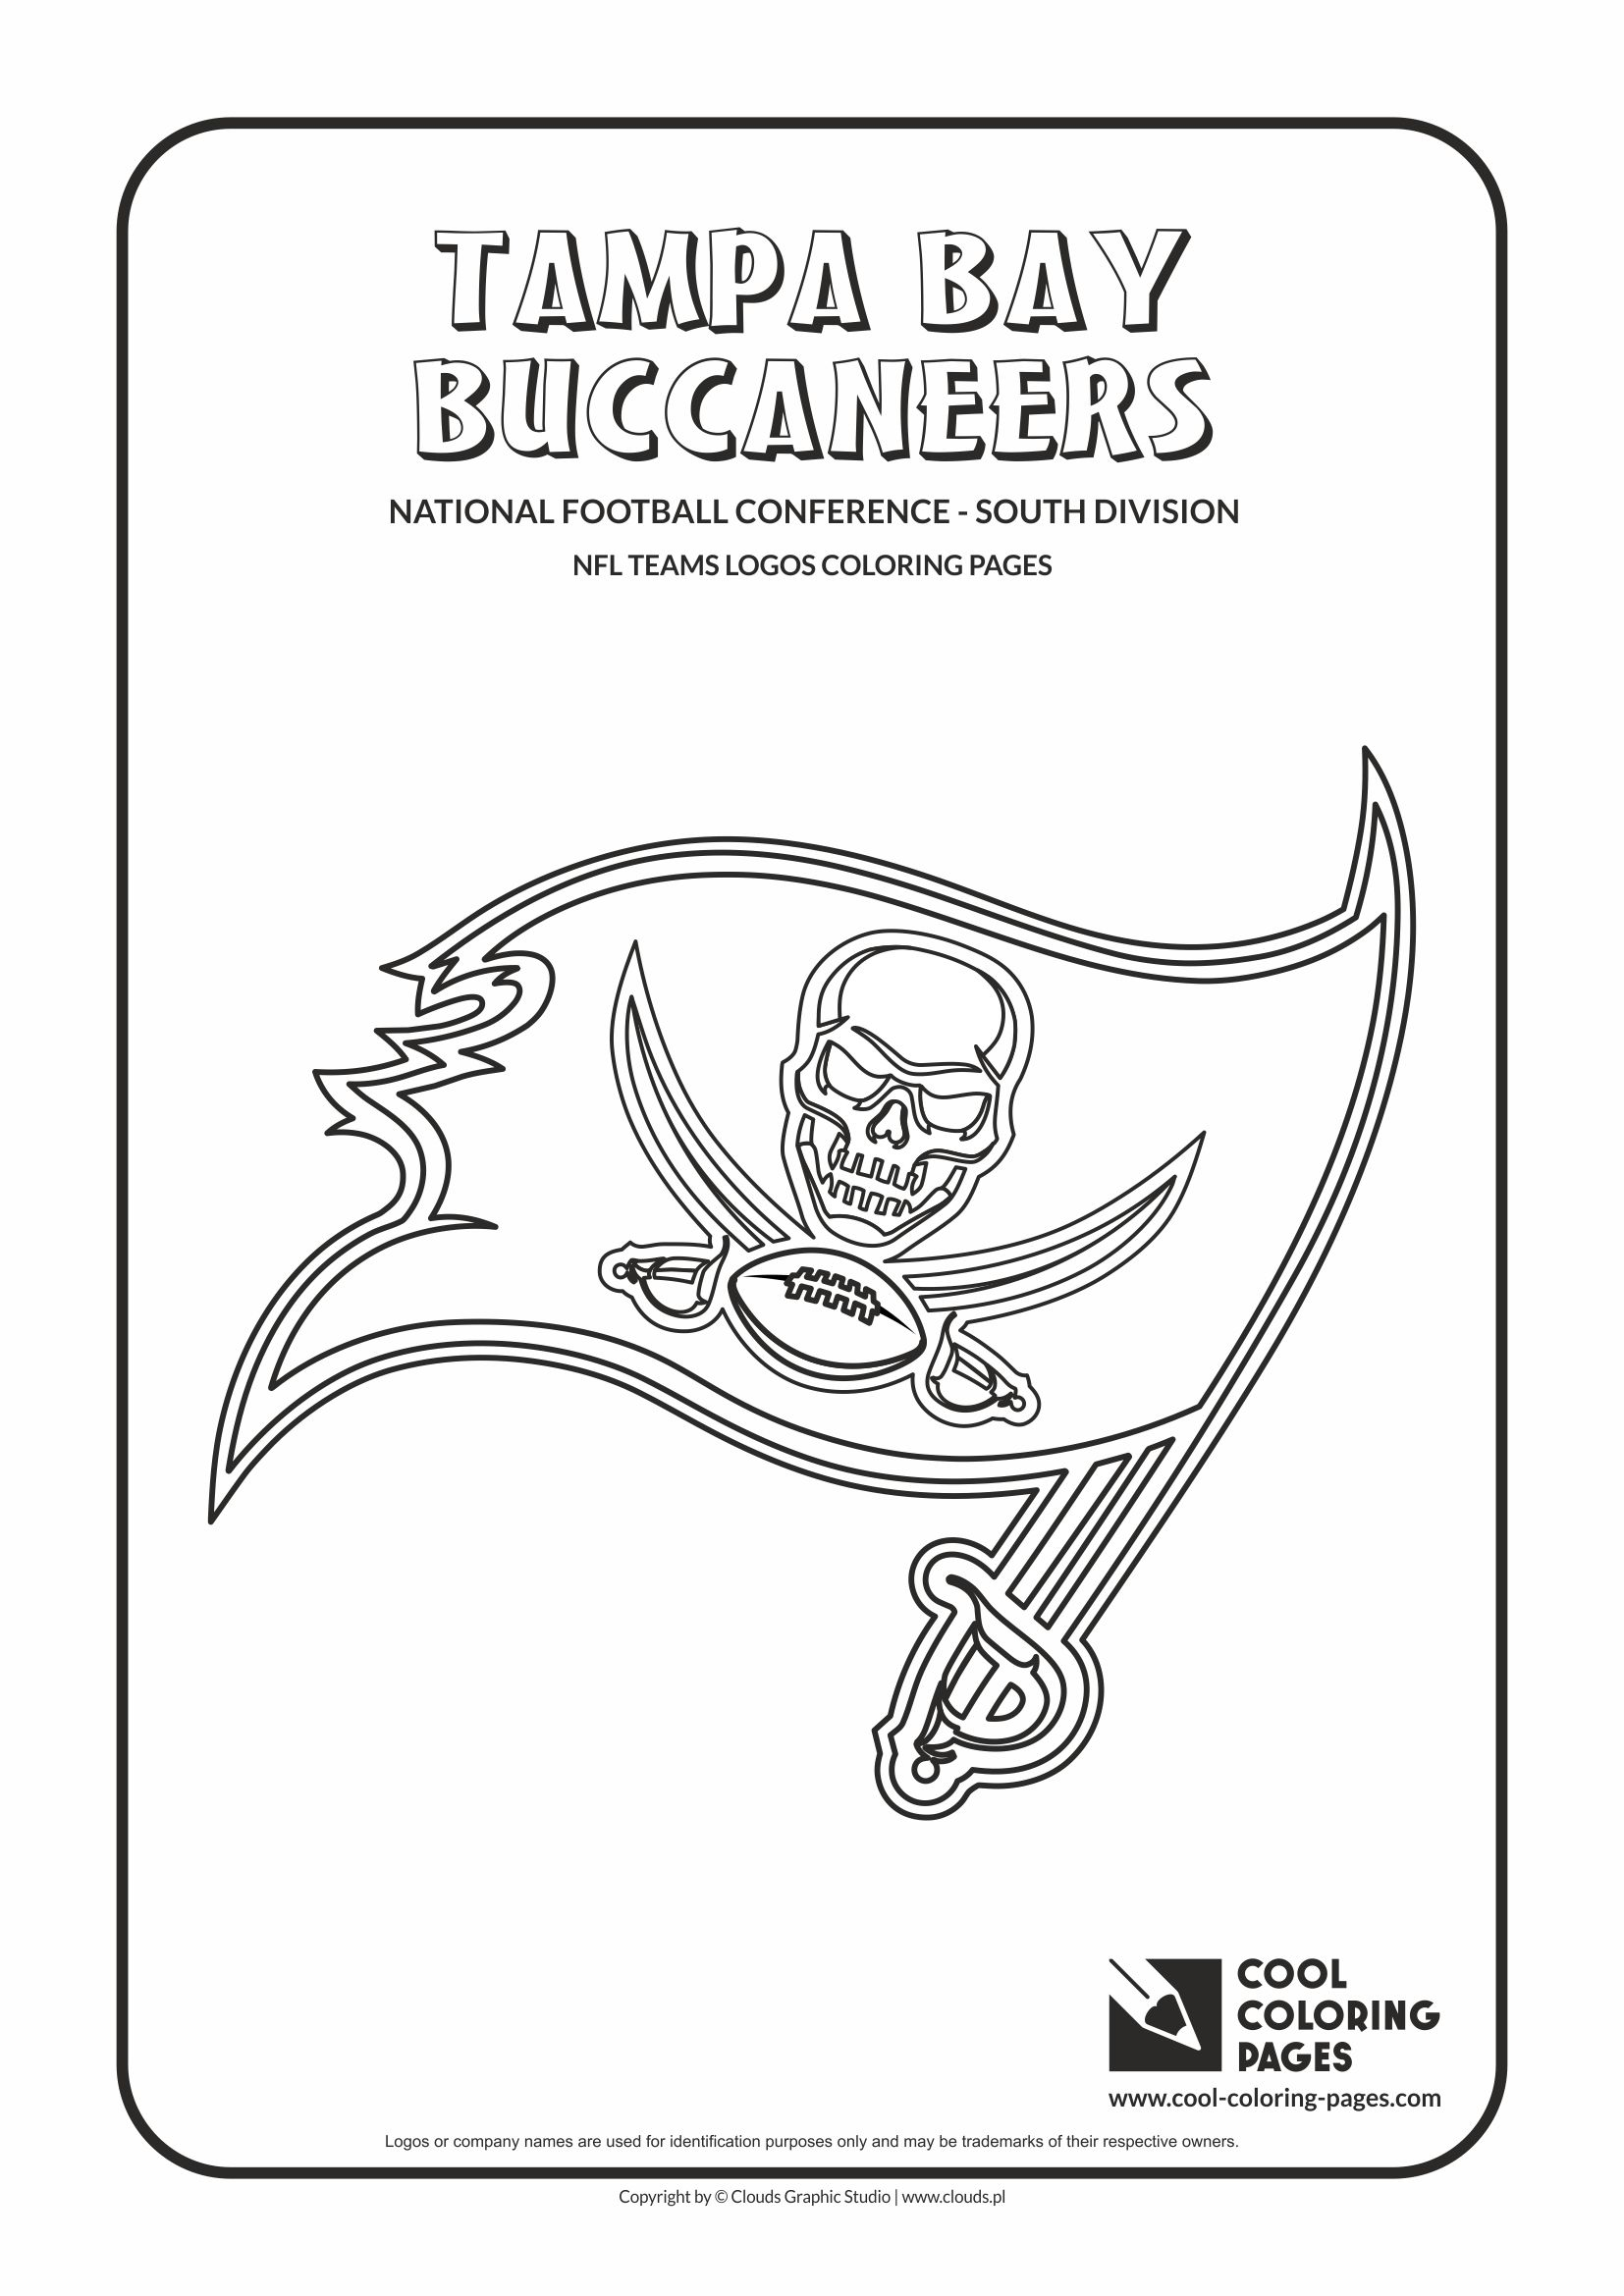 Cool Coloring Pages Tampa Bay Buccaneers